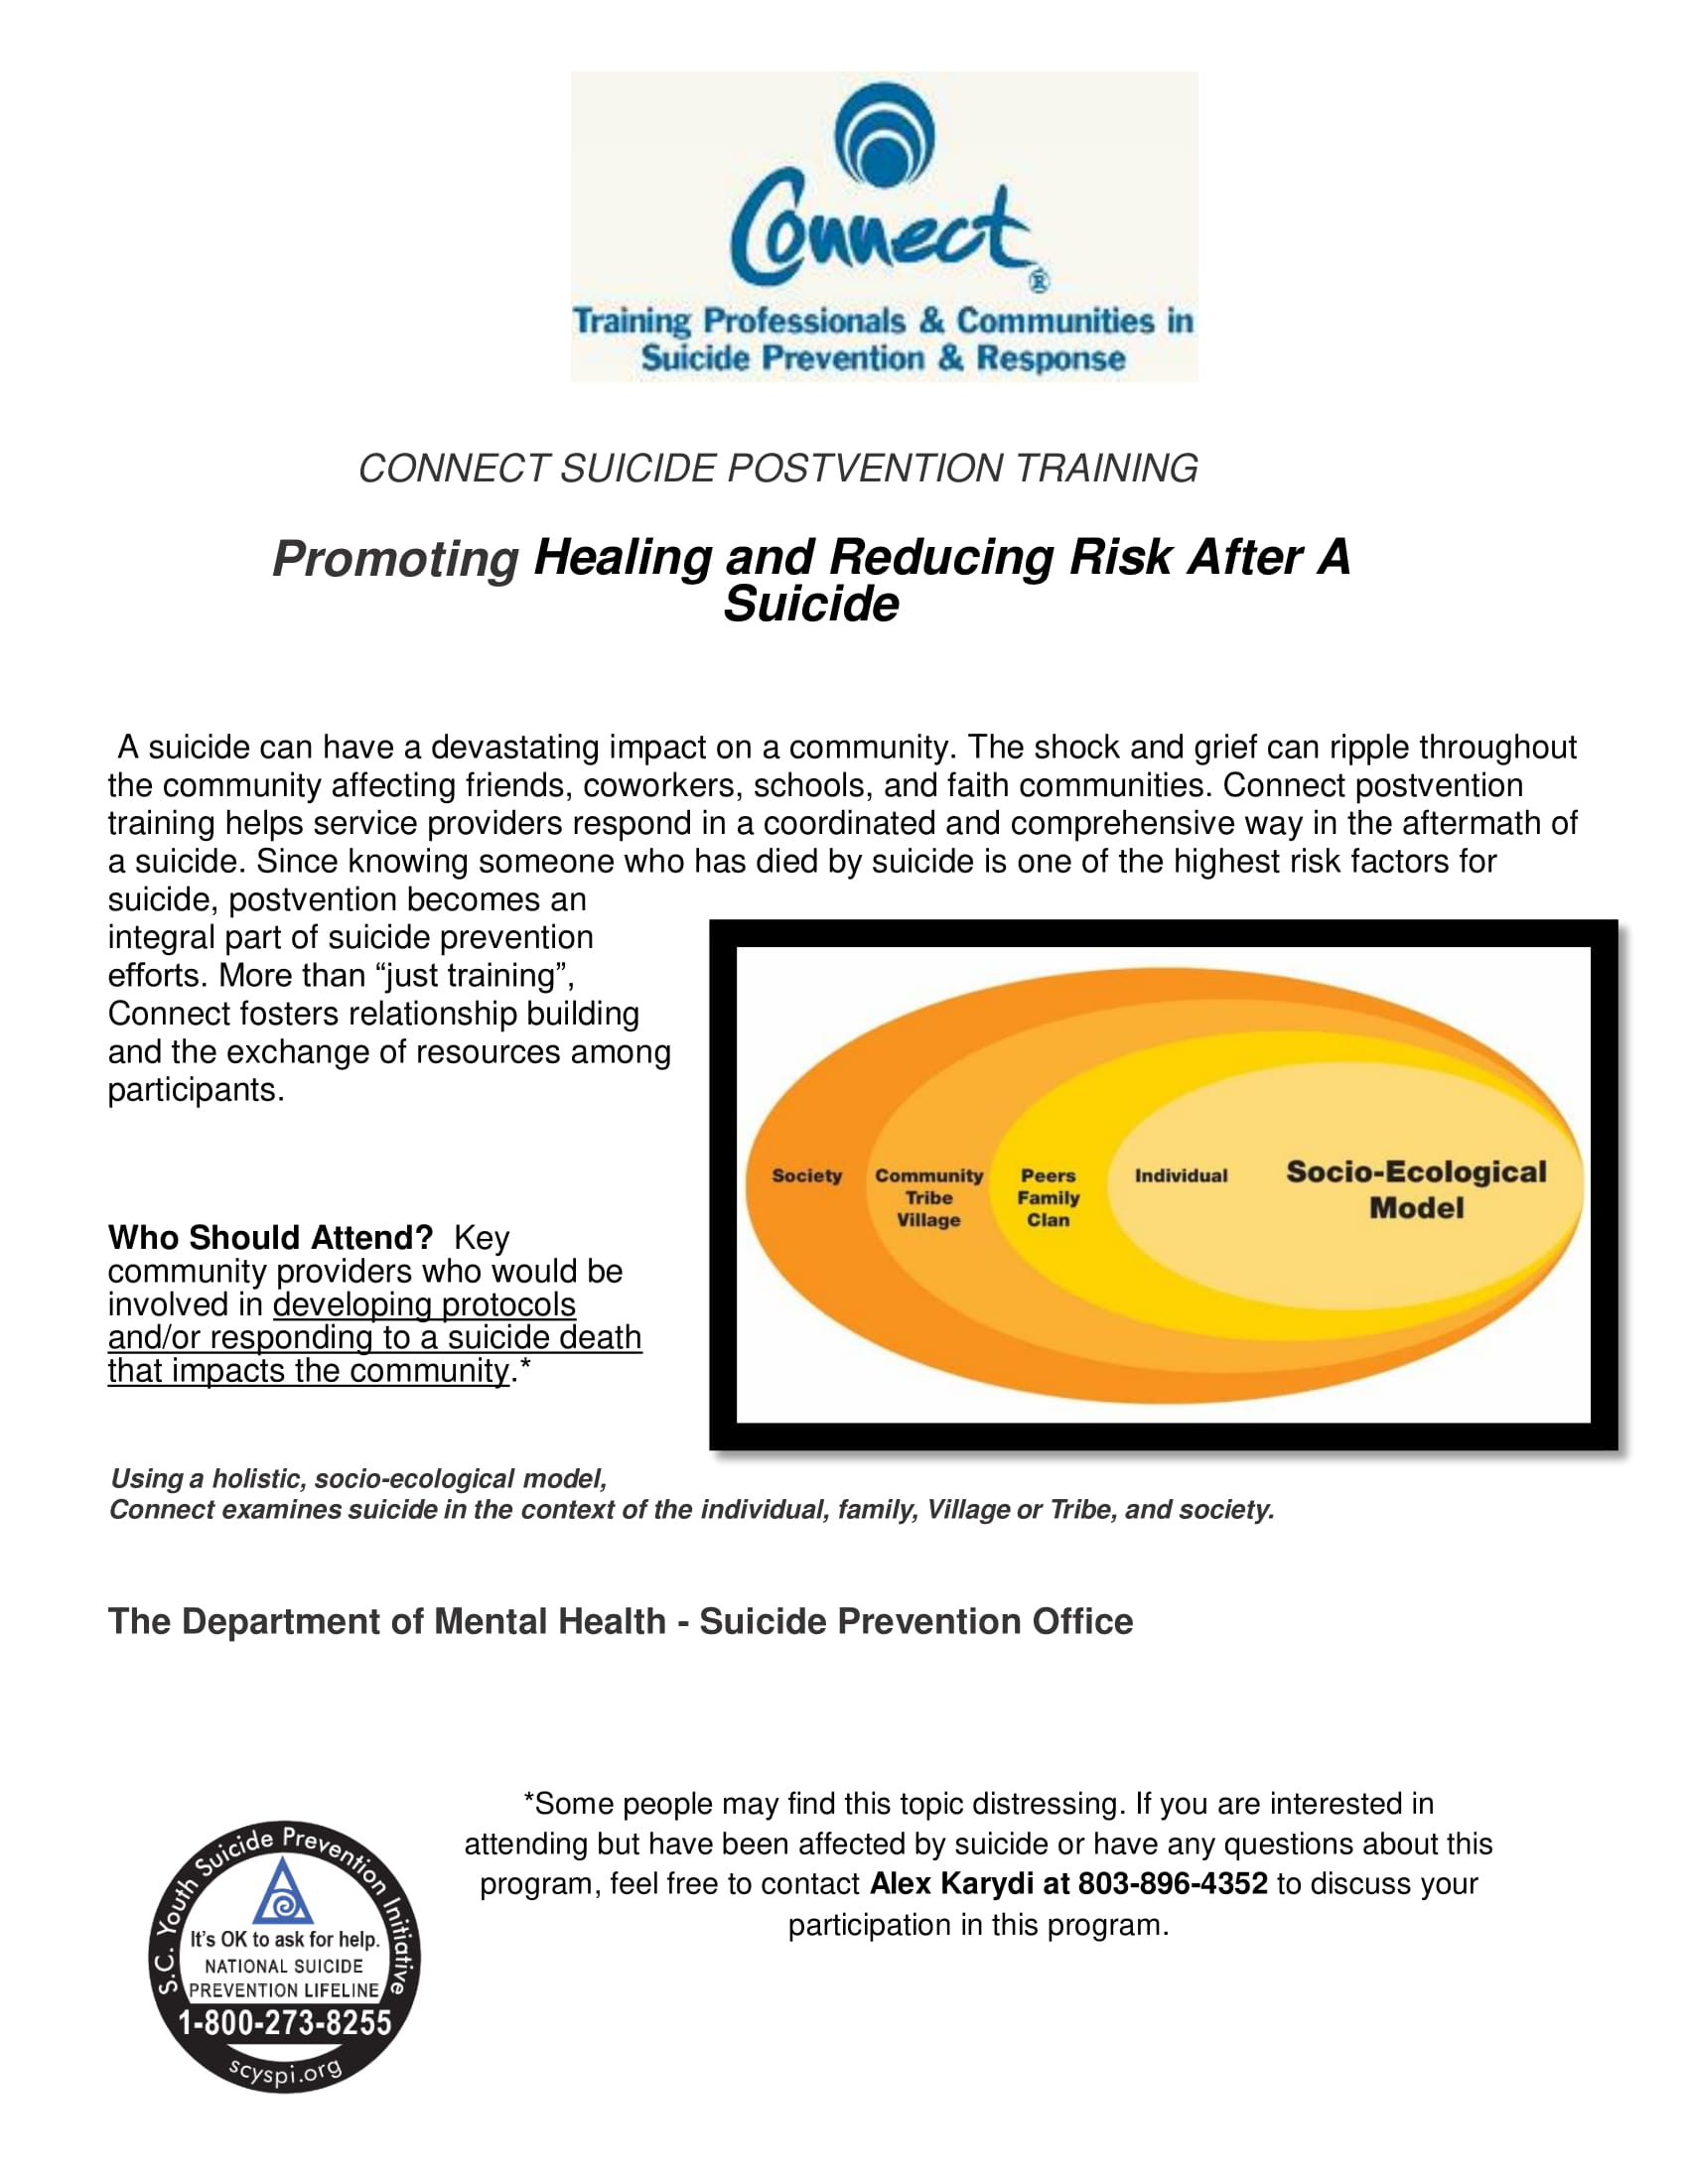 Connect Suicide Postvention Training Flyer